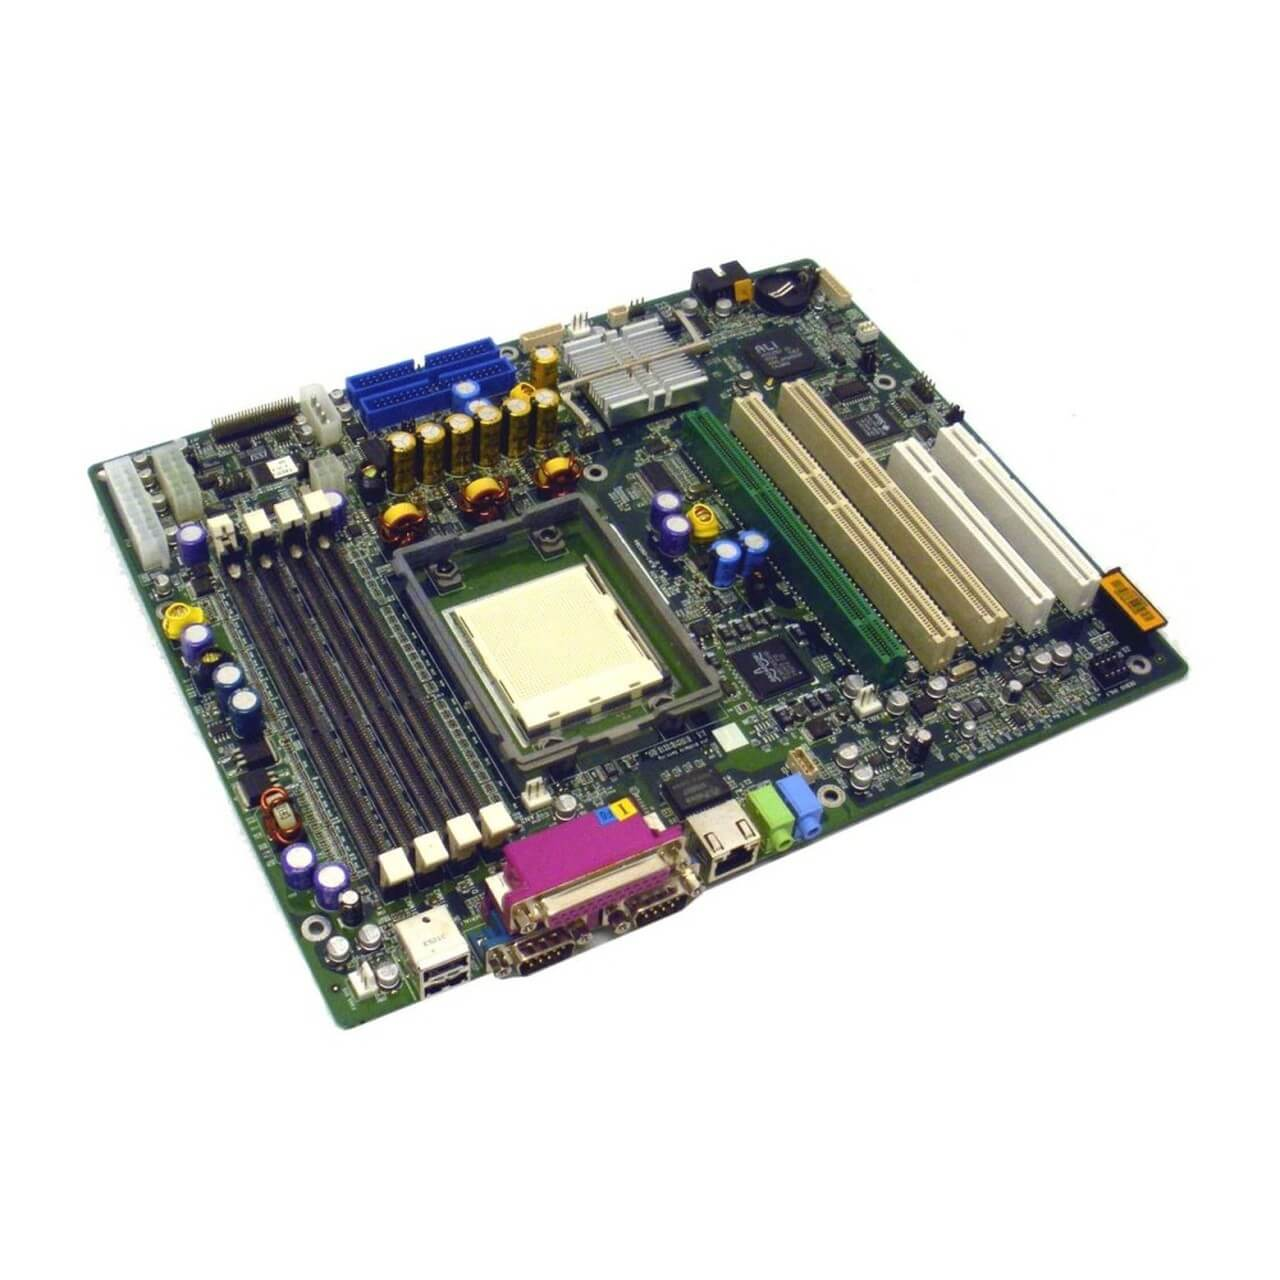 Buy & save on refurbished Oracle / Sun server system boards from your trusted partners at Flagship Technologies.